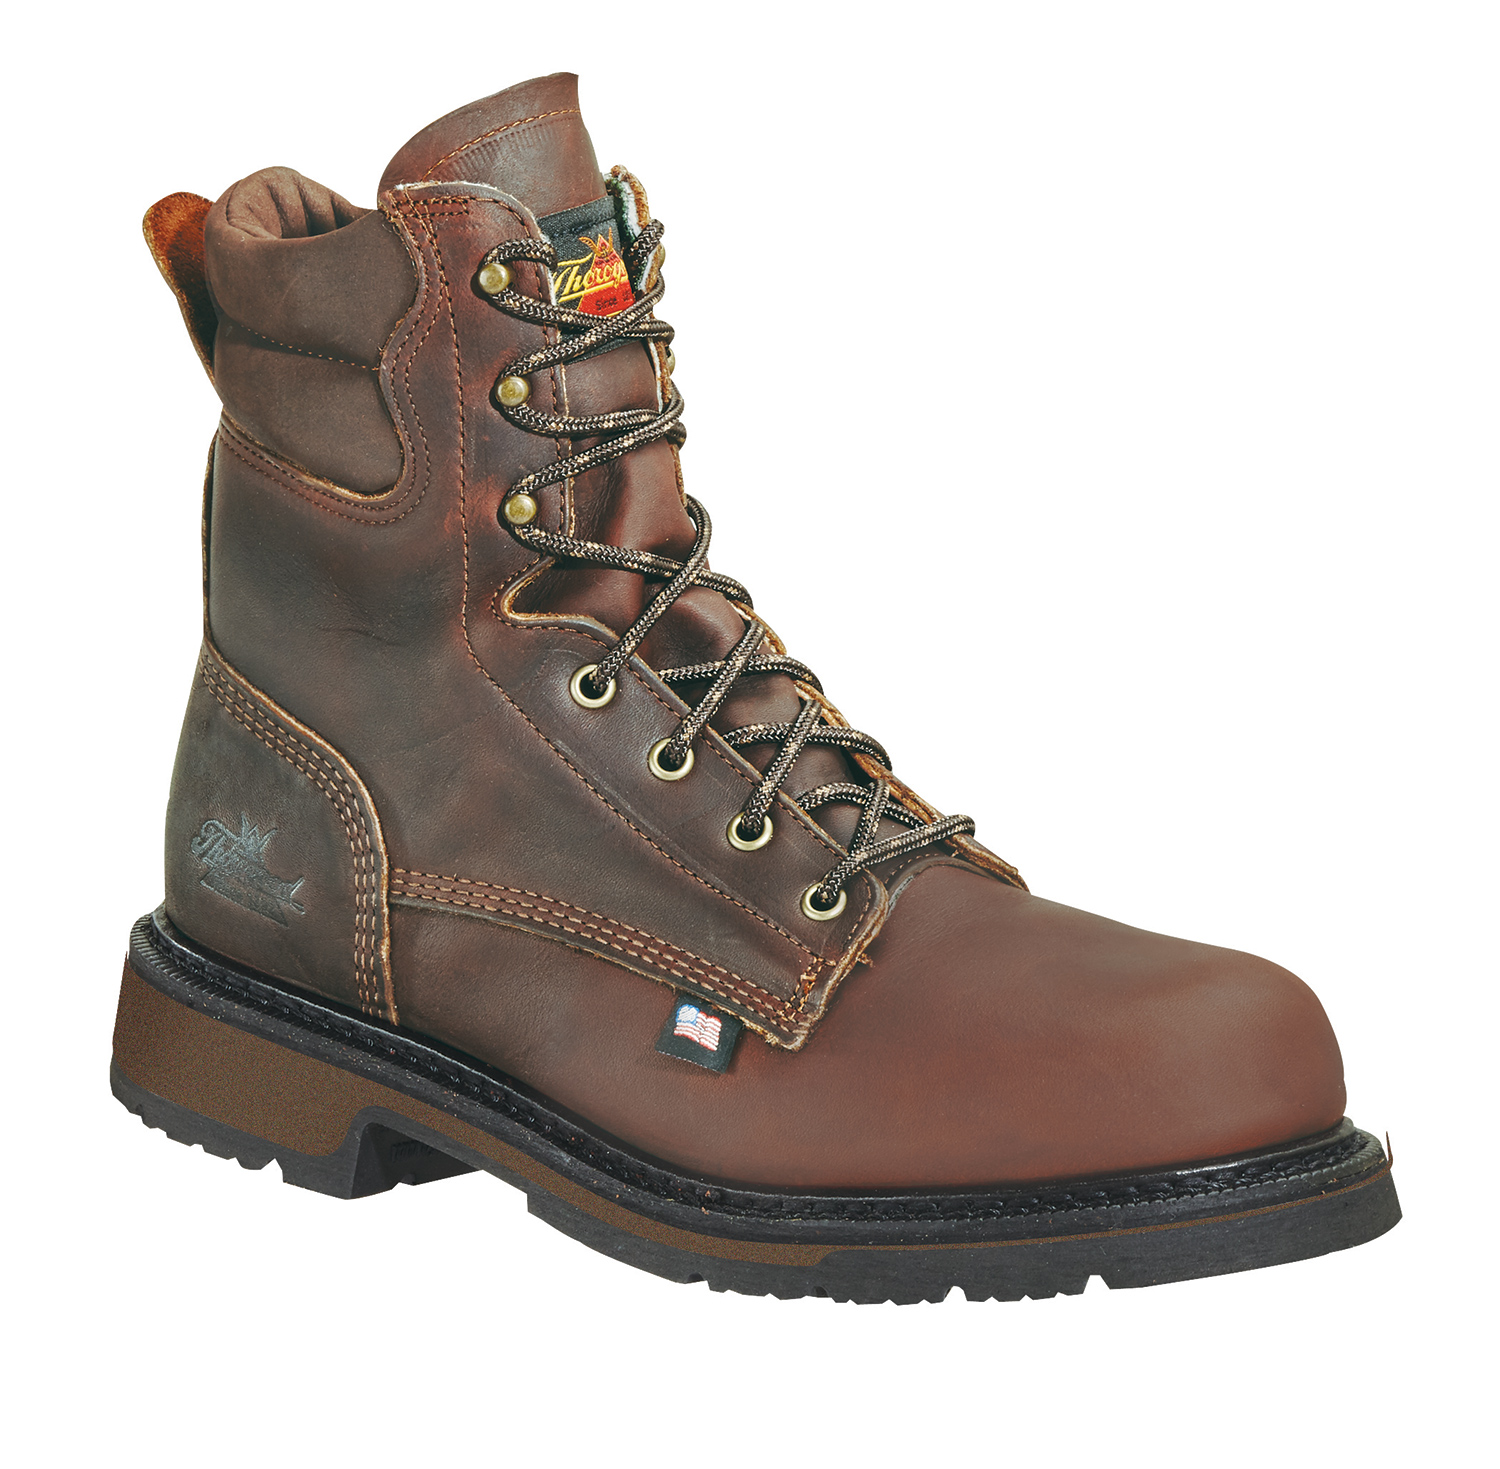 Most Comfortable Work Boots - Page 4 - Tools U0026 Equipment - Contractor Talk